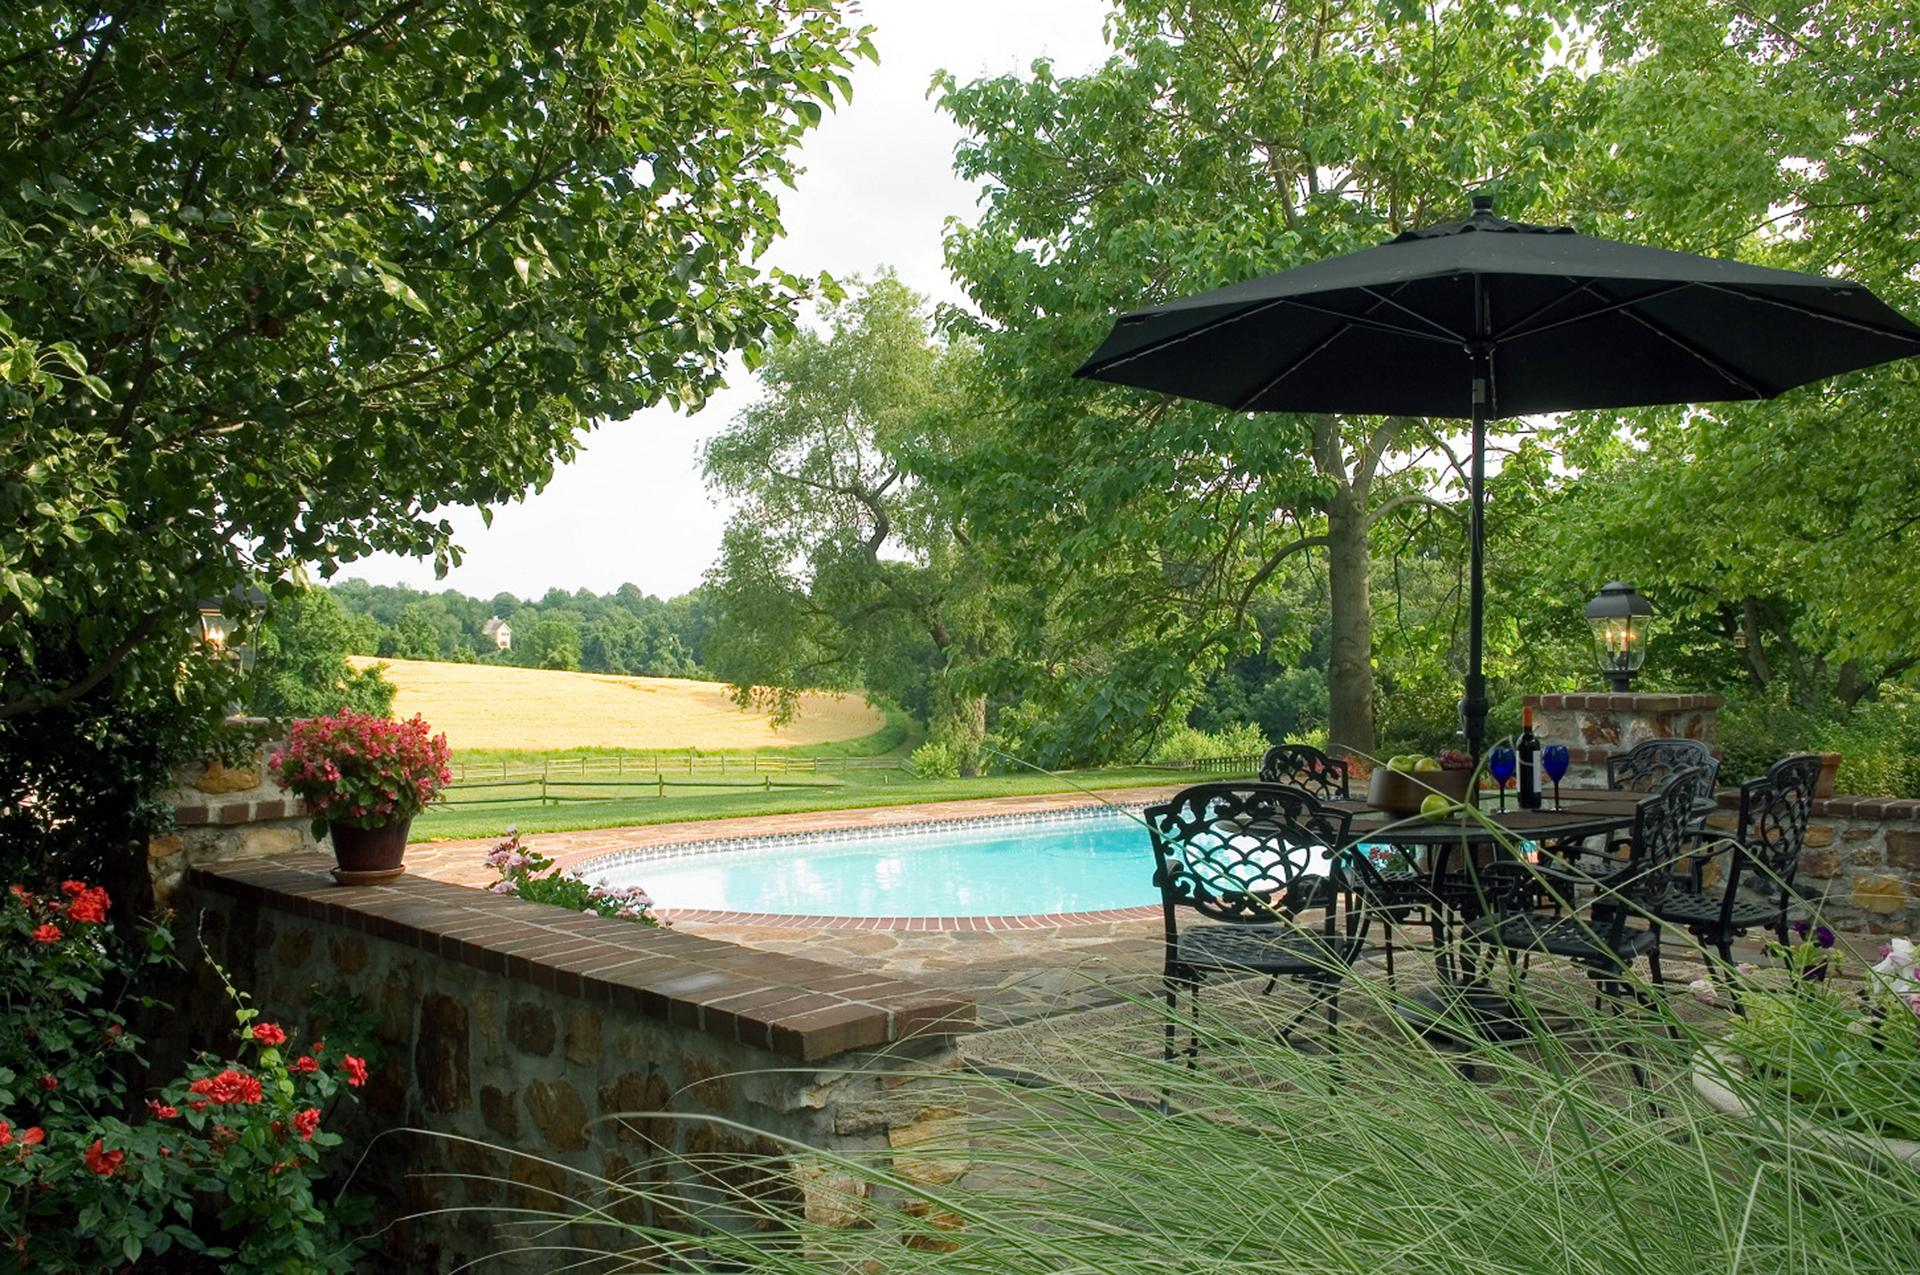 farmhouse-living-quiet-serene-pool-setting-chester-county-pa